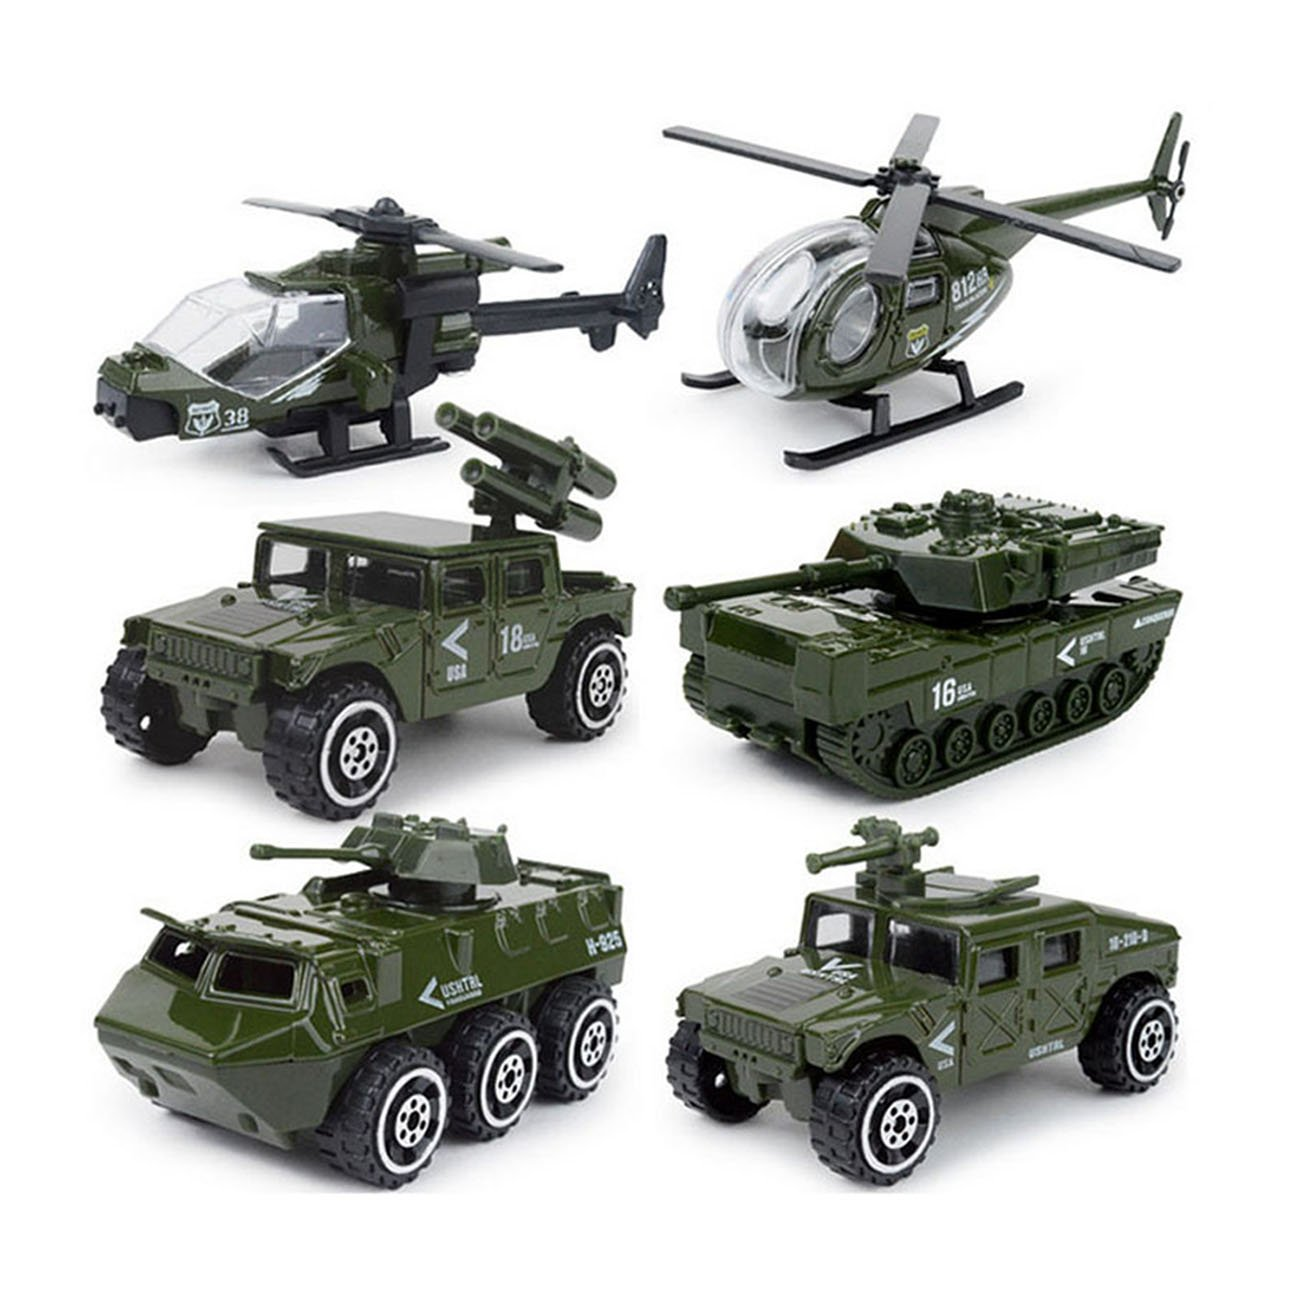 JQGT Diecast Military Vehicles Army Toy 6 in 1 Assorted Metal Model Cars Tank Jeep Attack Helicopter Panzer Playset for Kids Toddlers JQGT Trading